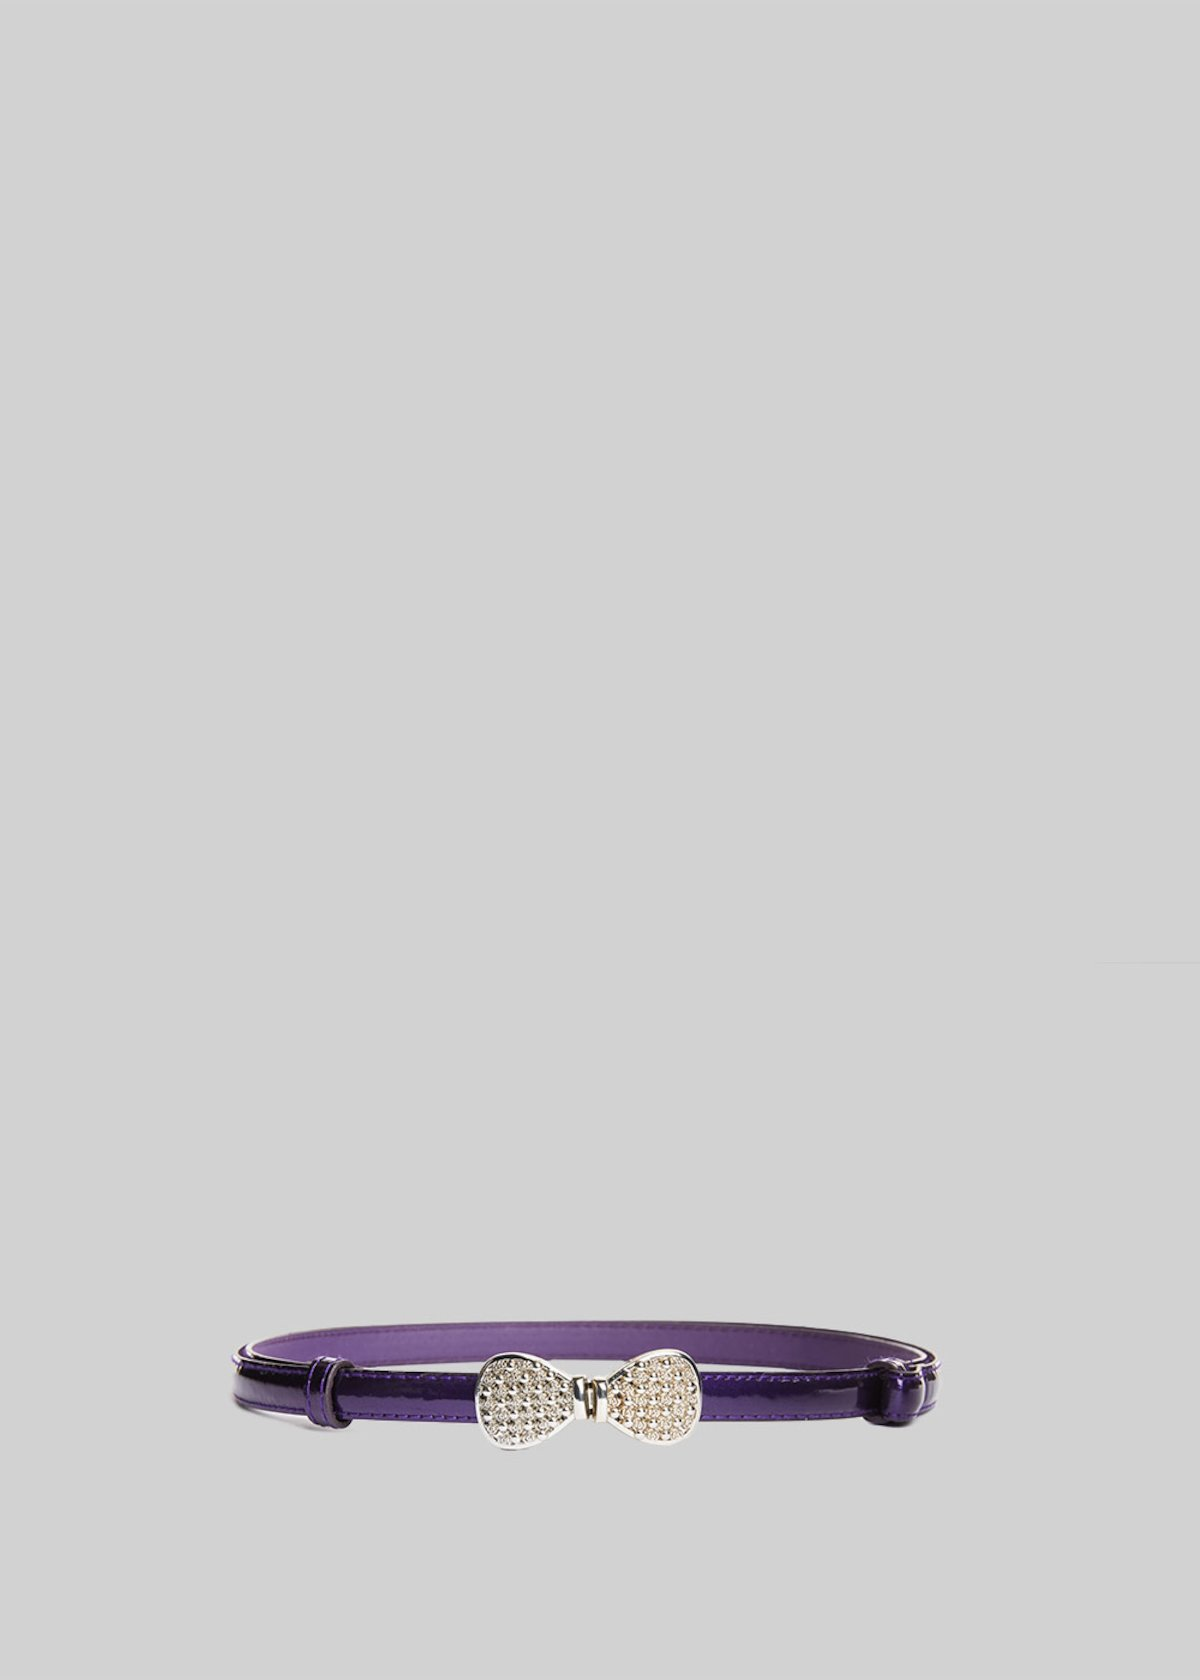 Cuala belt of painted eco-leather with silver bow - Violet